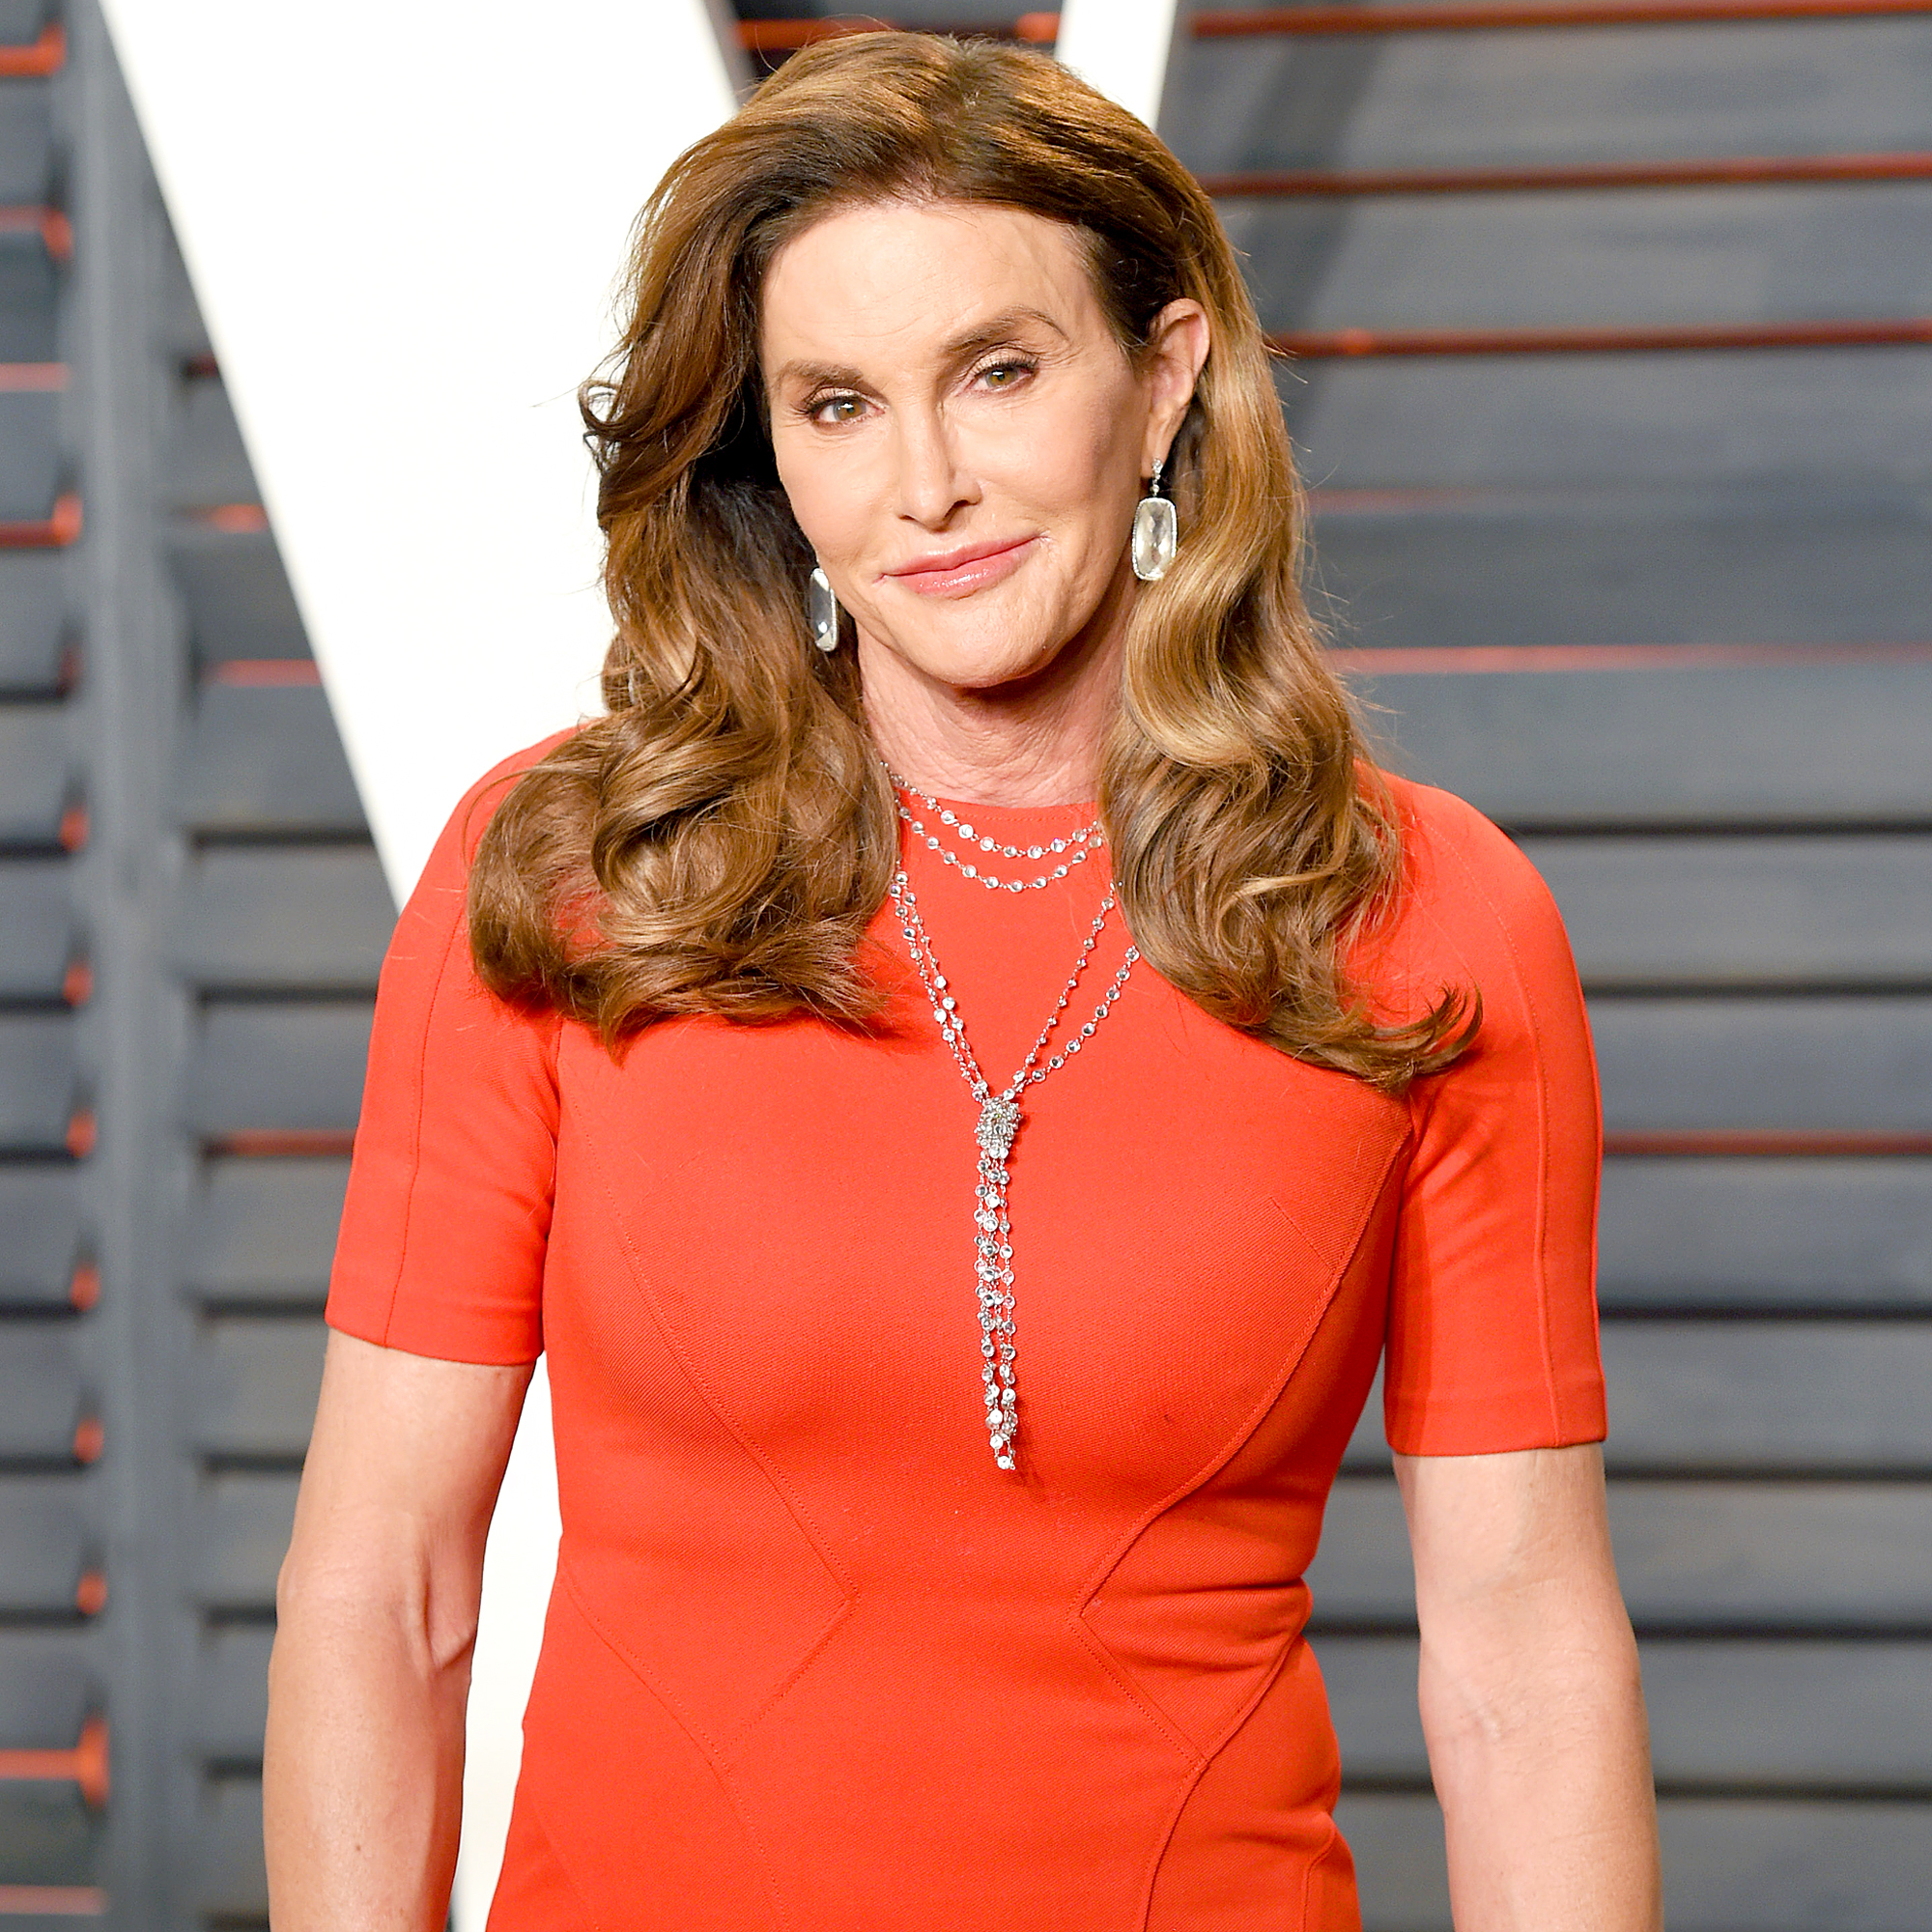 caitlyn jenner - photo #30